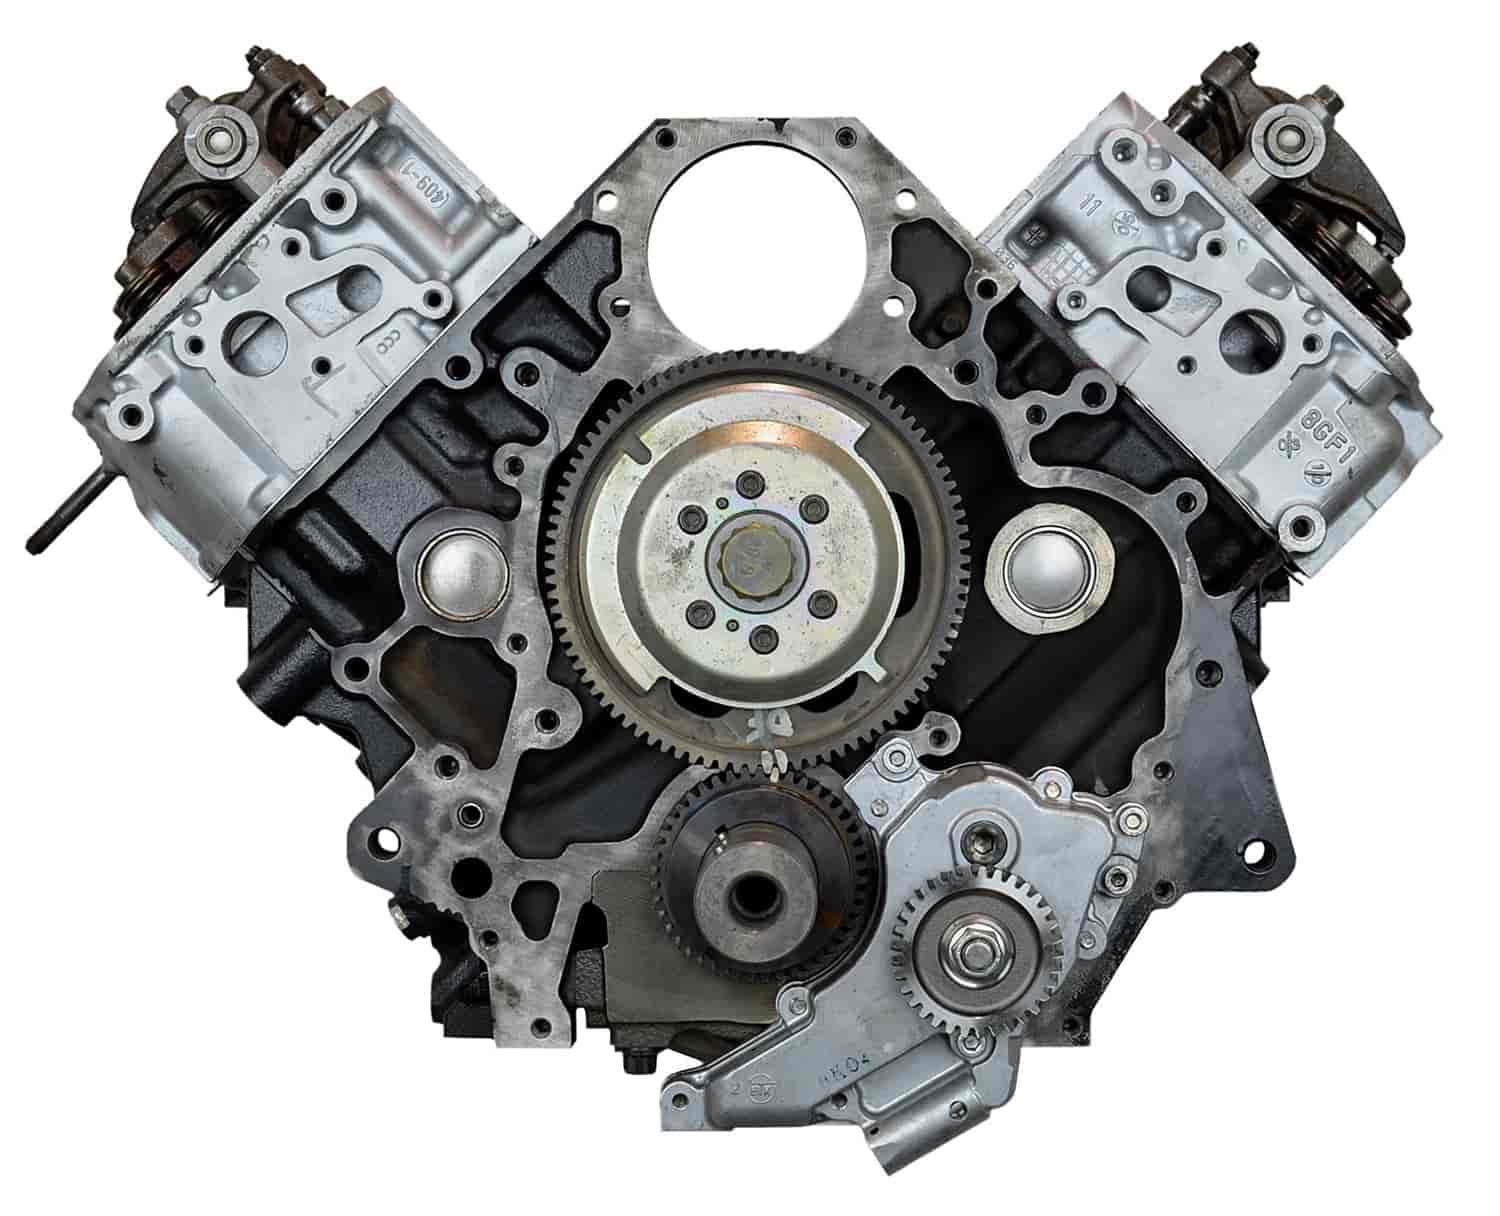 Gm Crate Engines >> ATK Engines DCX62: Remanufactured Crate Engine for 2004-2005 Chevy/GMC Medium Duty Truck with 6 ...